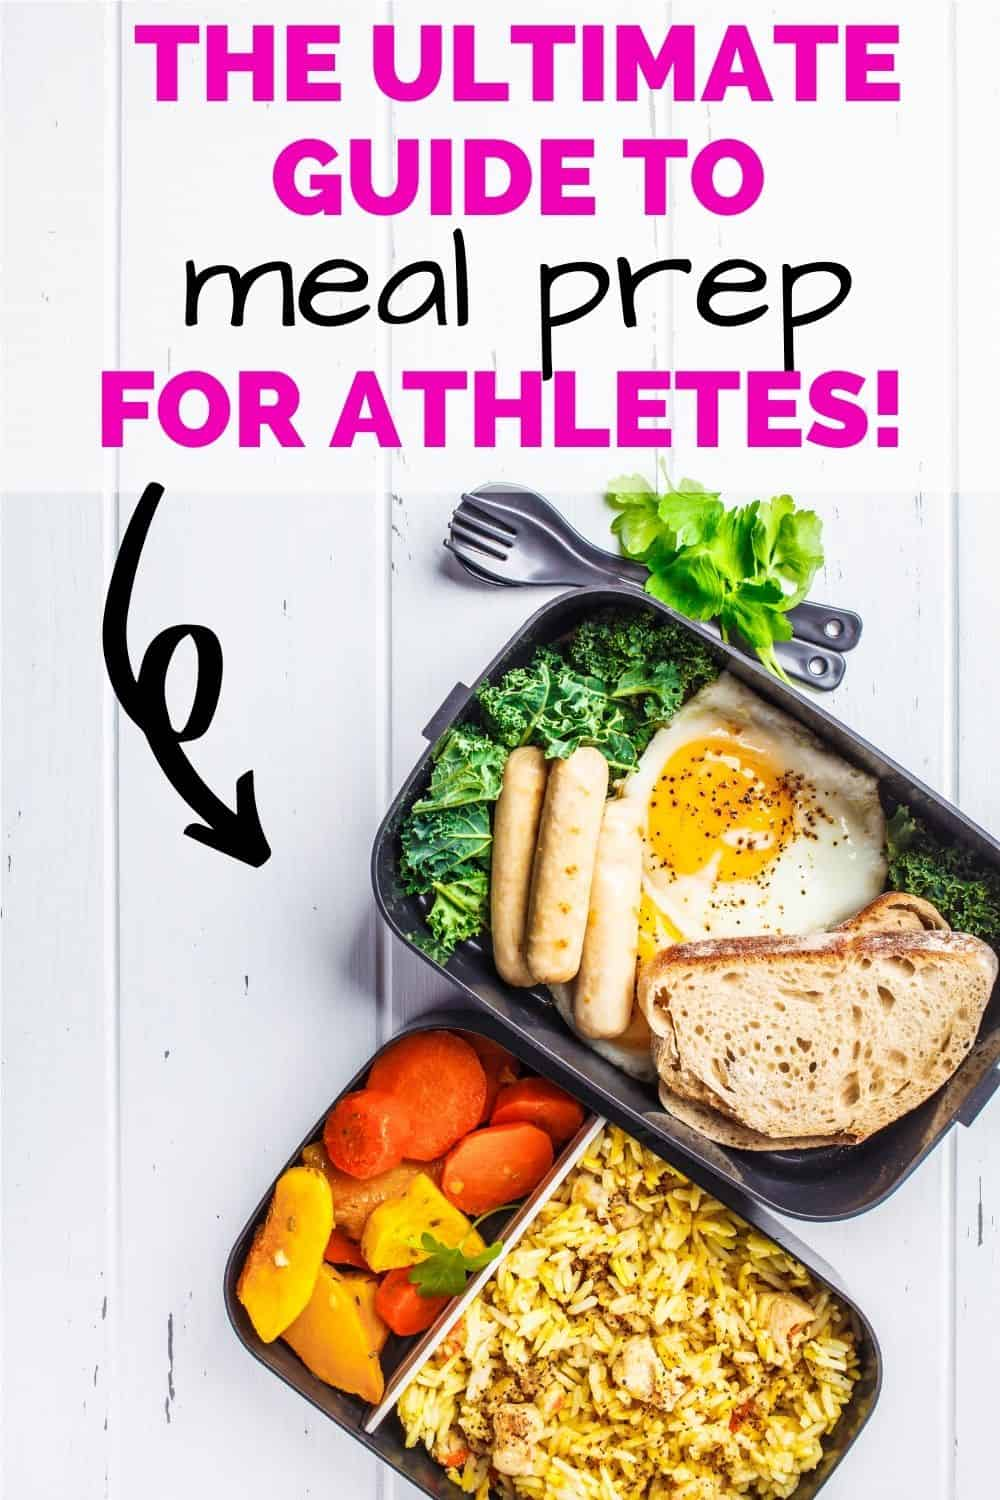 two athlete meal prep dishes filled with healthy food